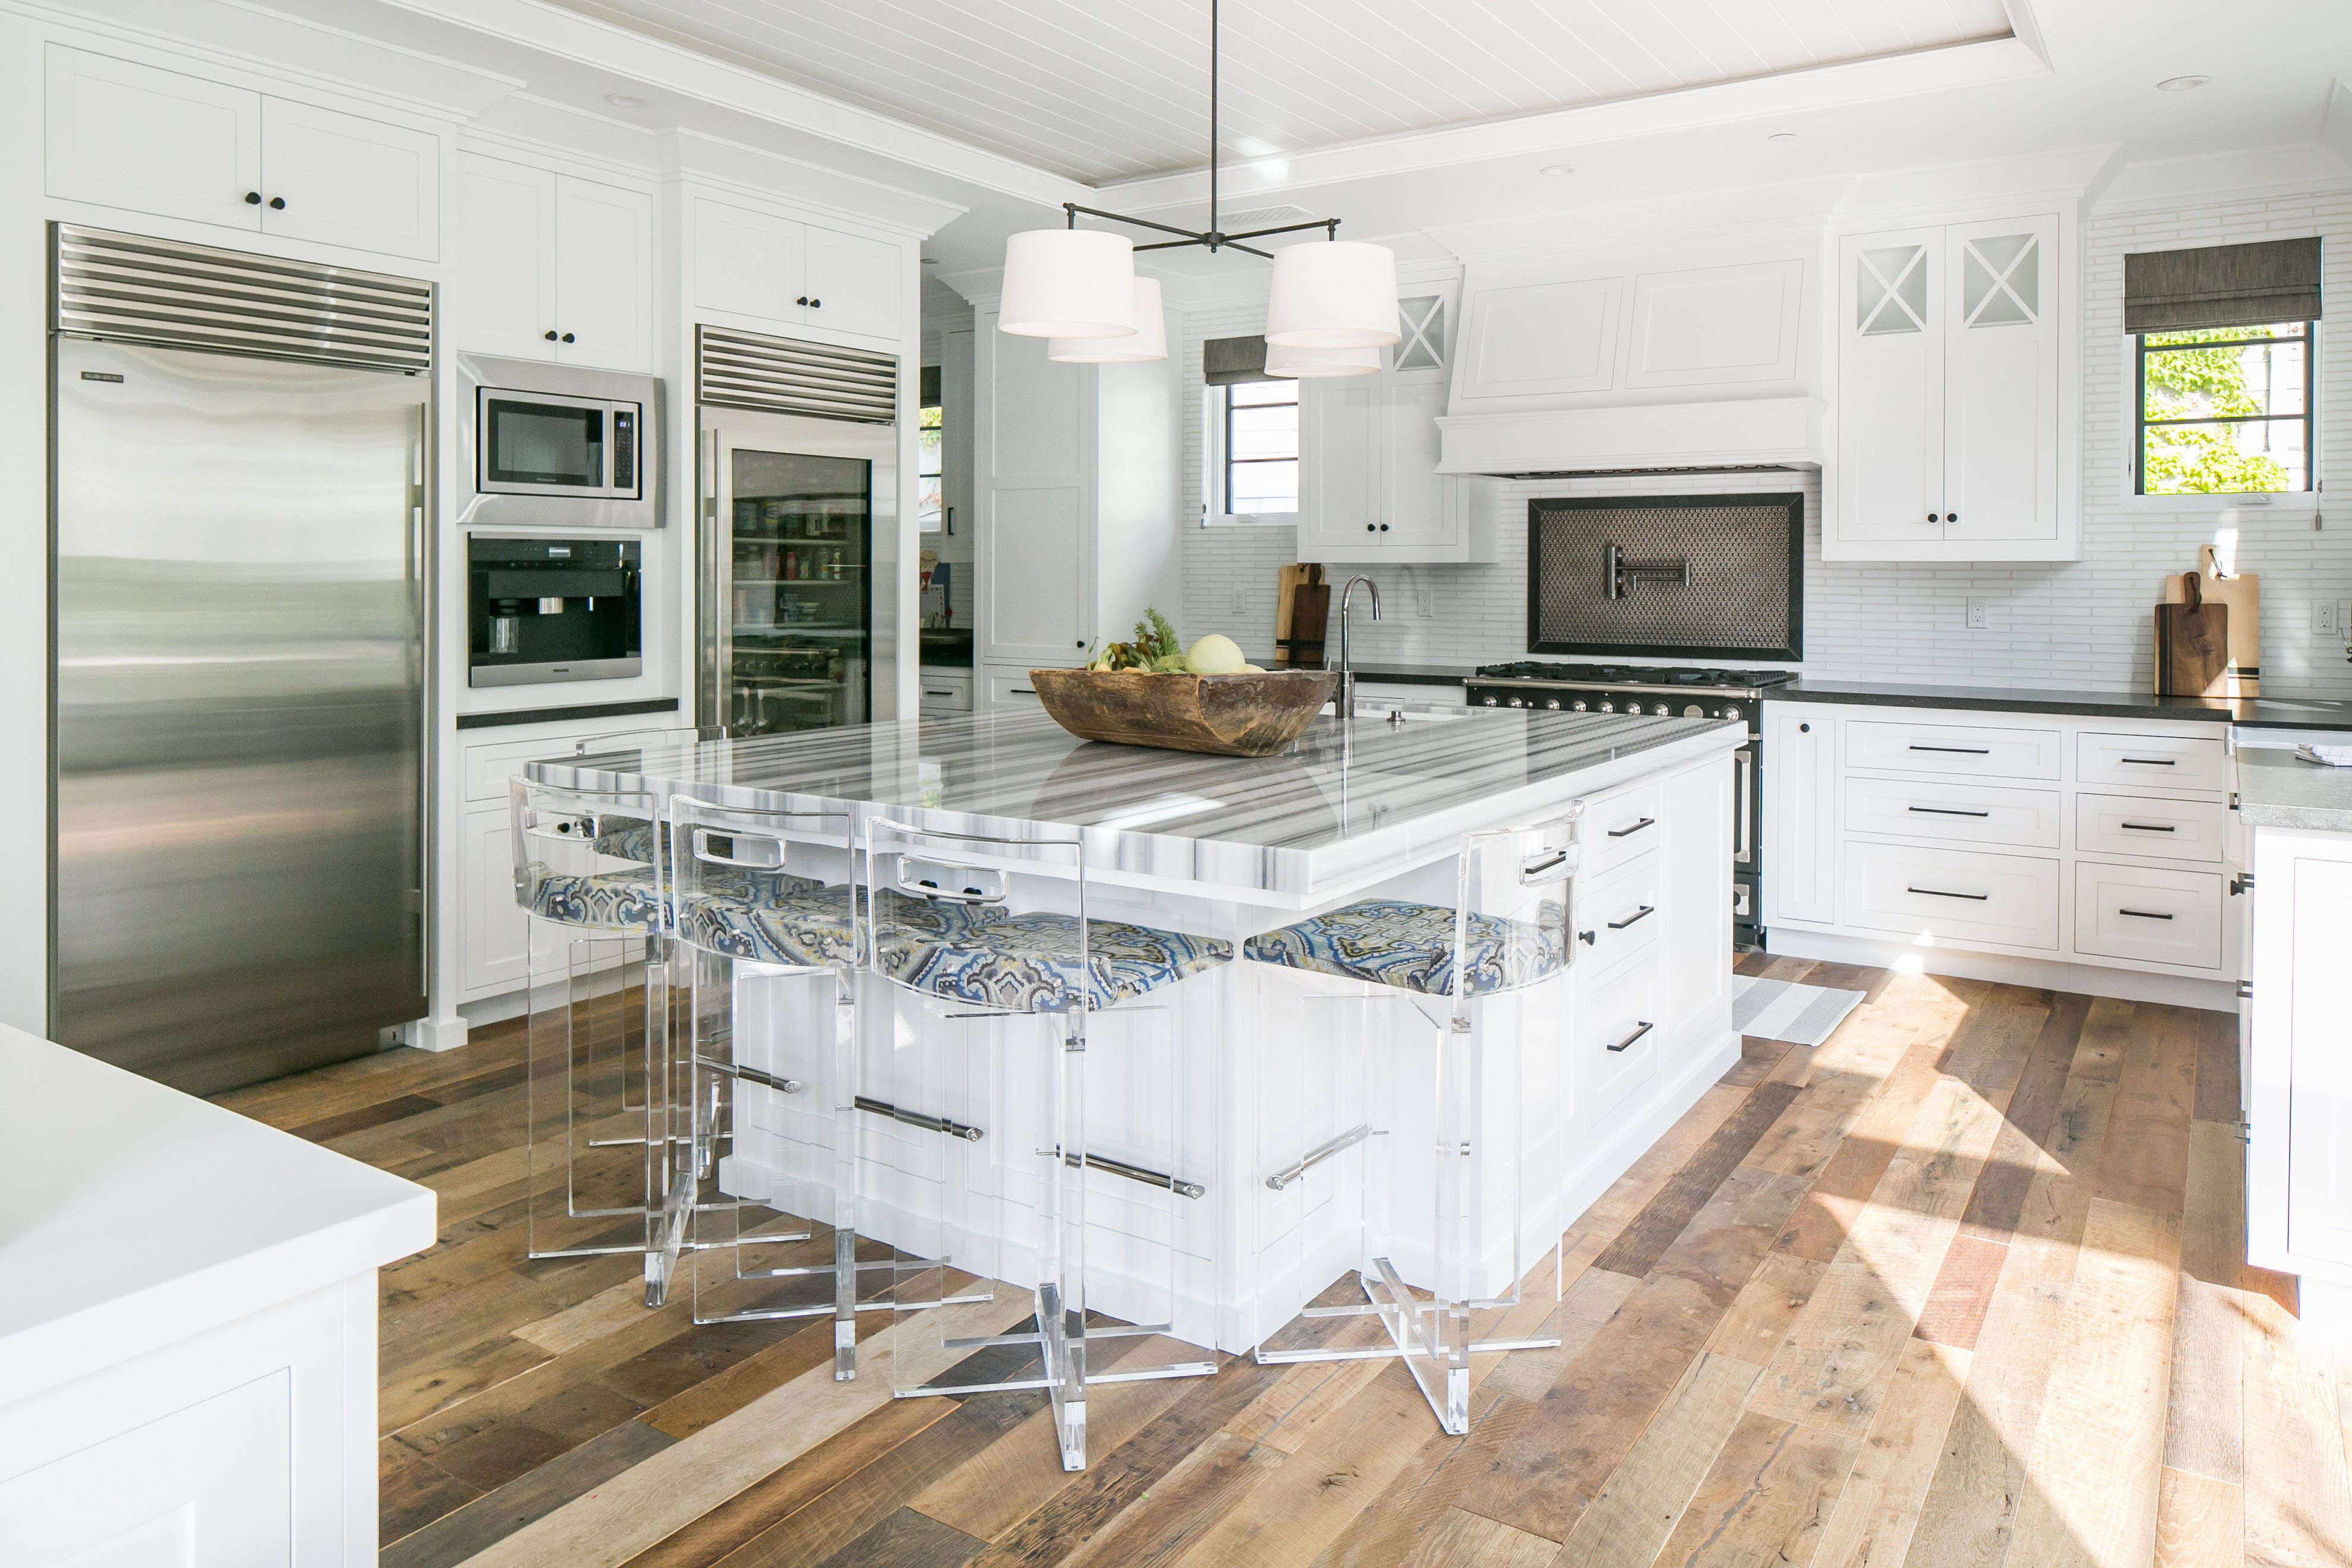 striped marble countertop